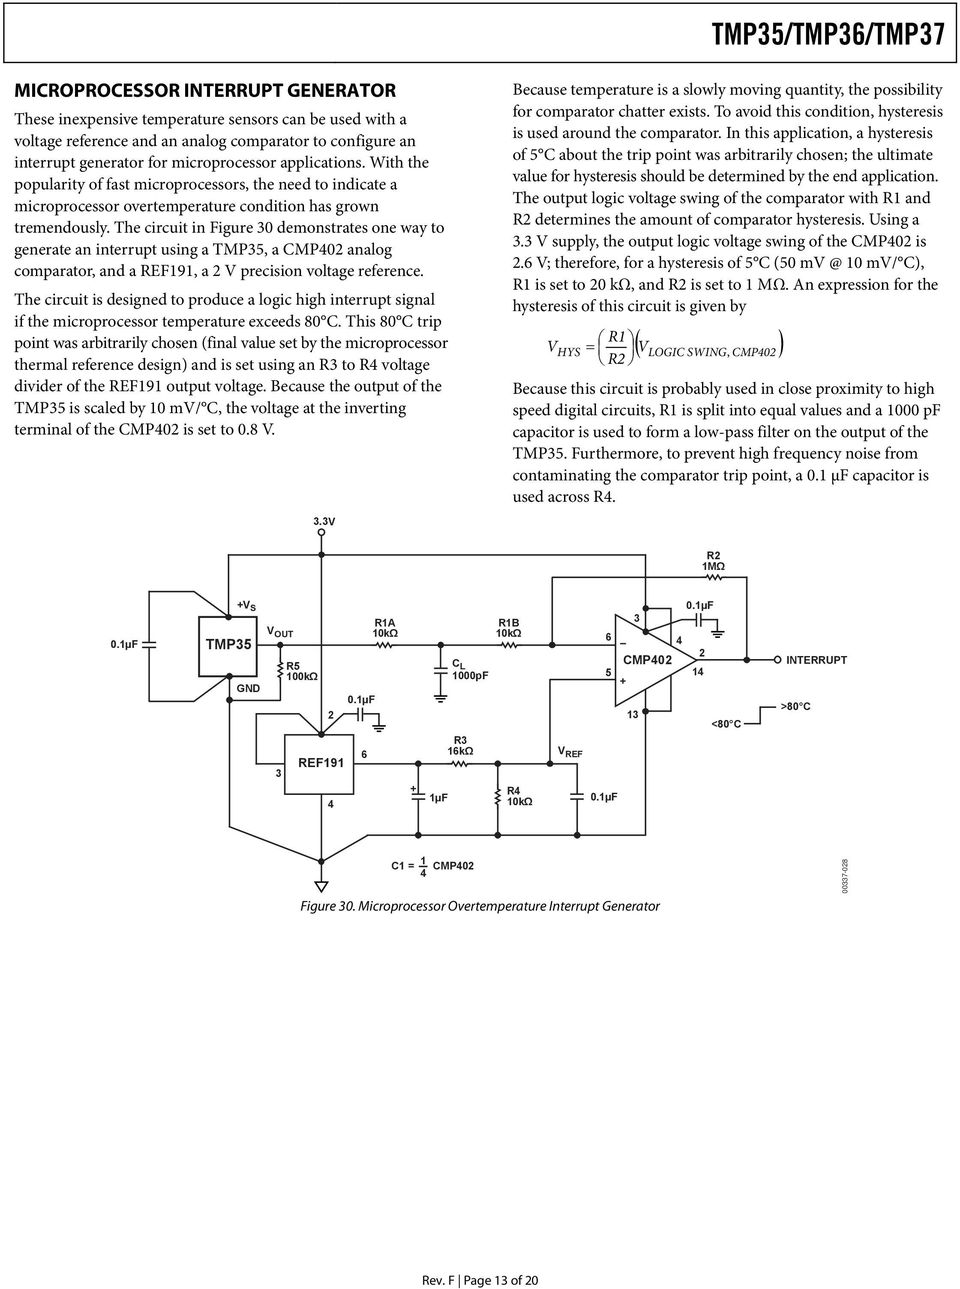 Low Voltage Temperature Sensors Tmp35 Tmp36 Tmp37 Pdf Magnetic Field Sensor Ad22151 Magneticsensor Sensorcircuit The Circuit In Figure Demonstrates One Way To Generate An Interrupt Using A Tmp5